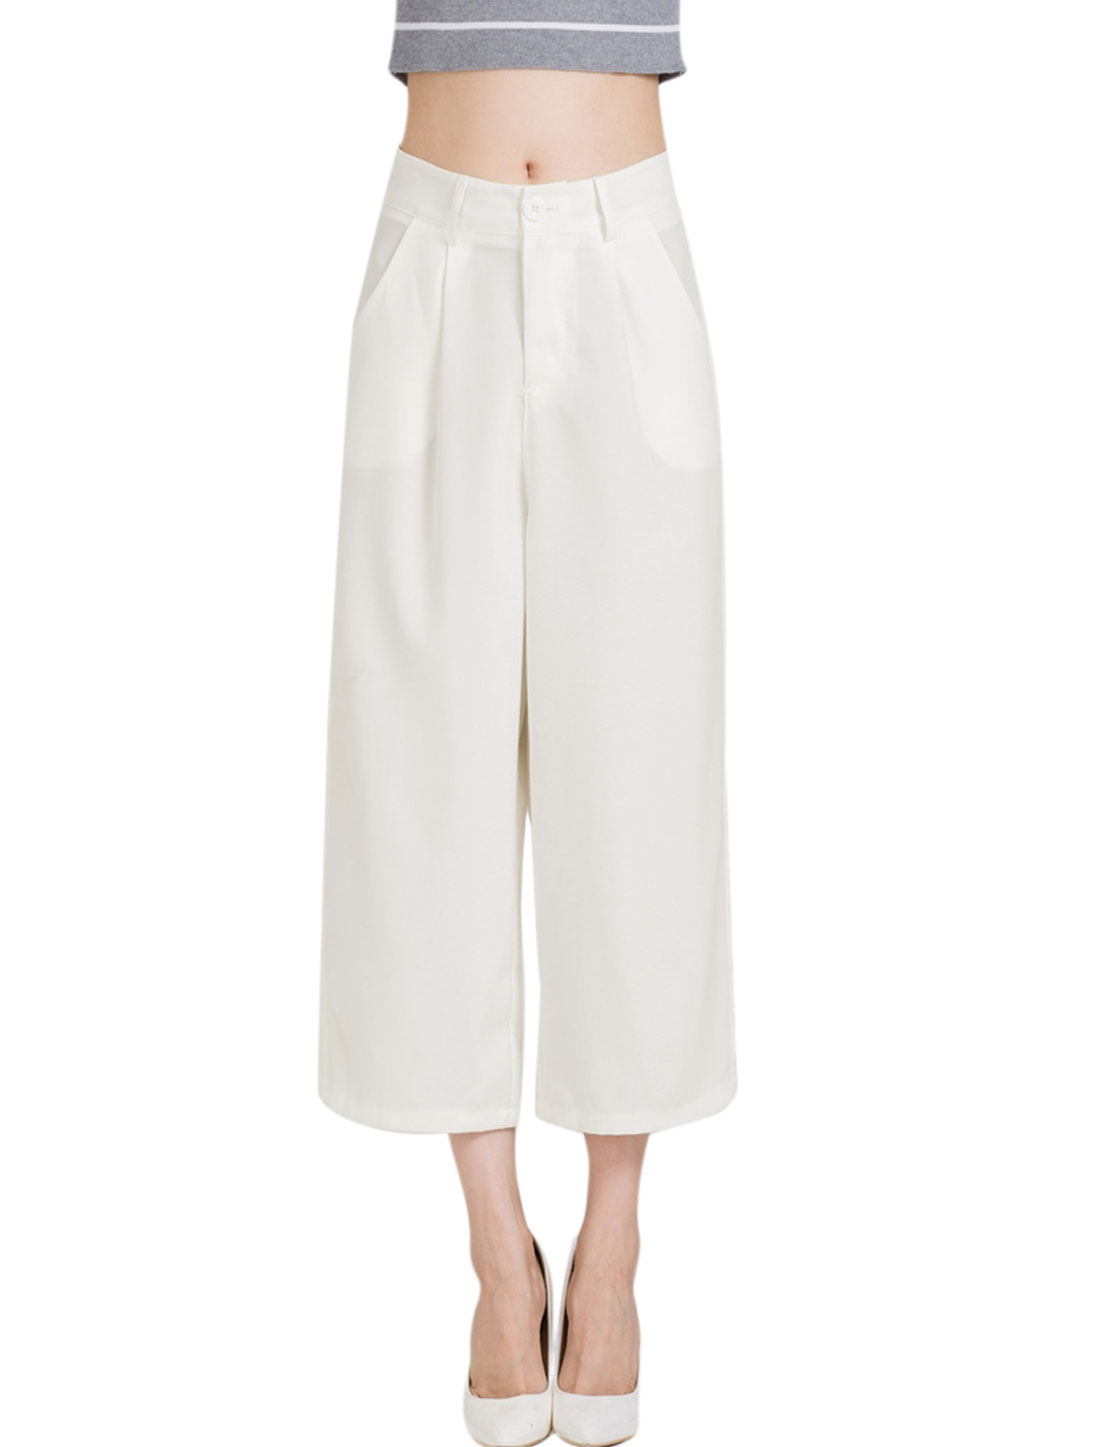 Women Mid Rise Zip Fly Pockets Wide Leg Loose Cropped Pants White L